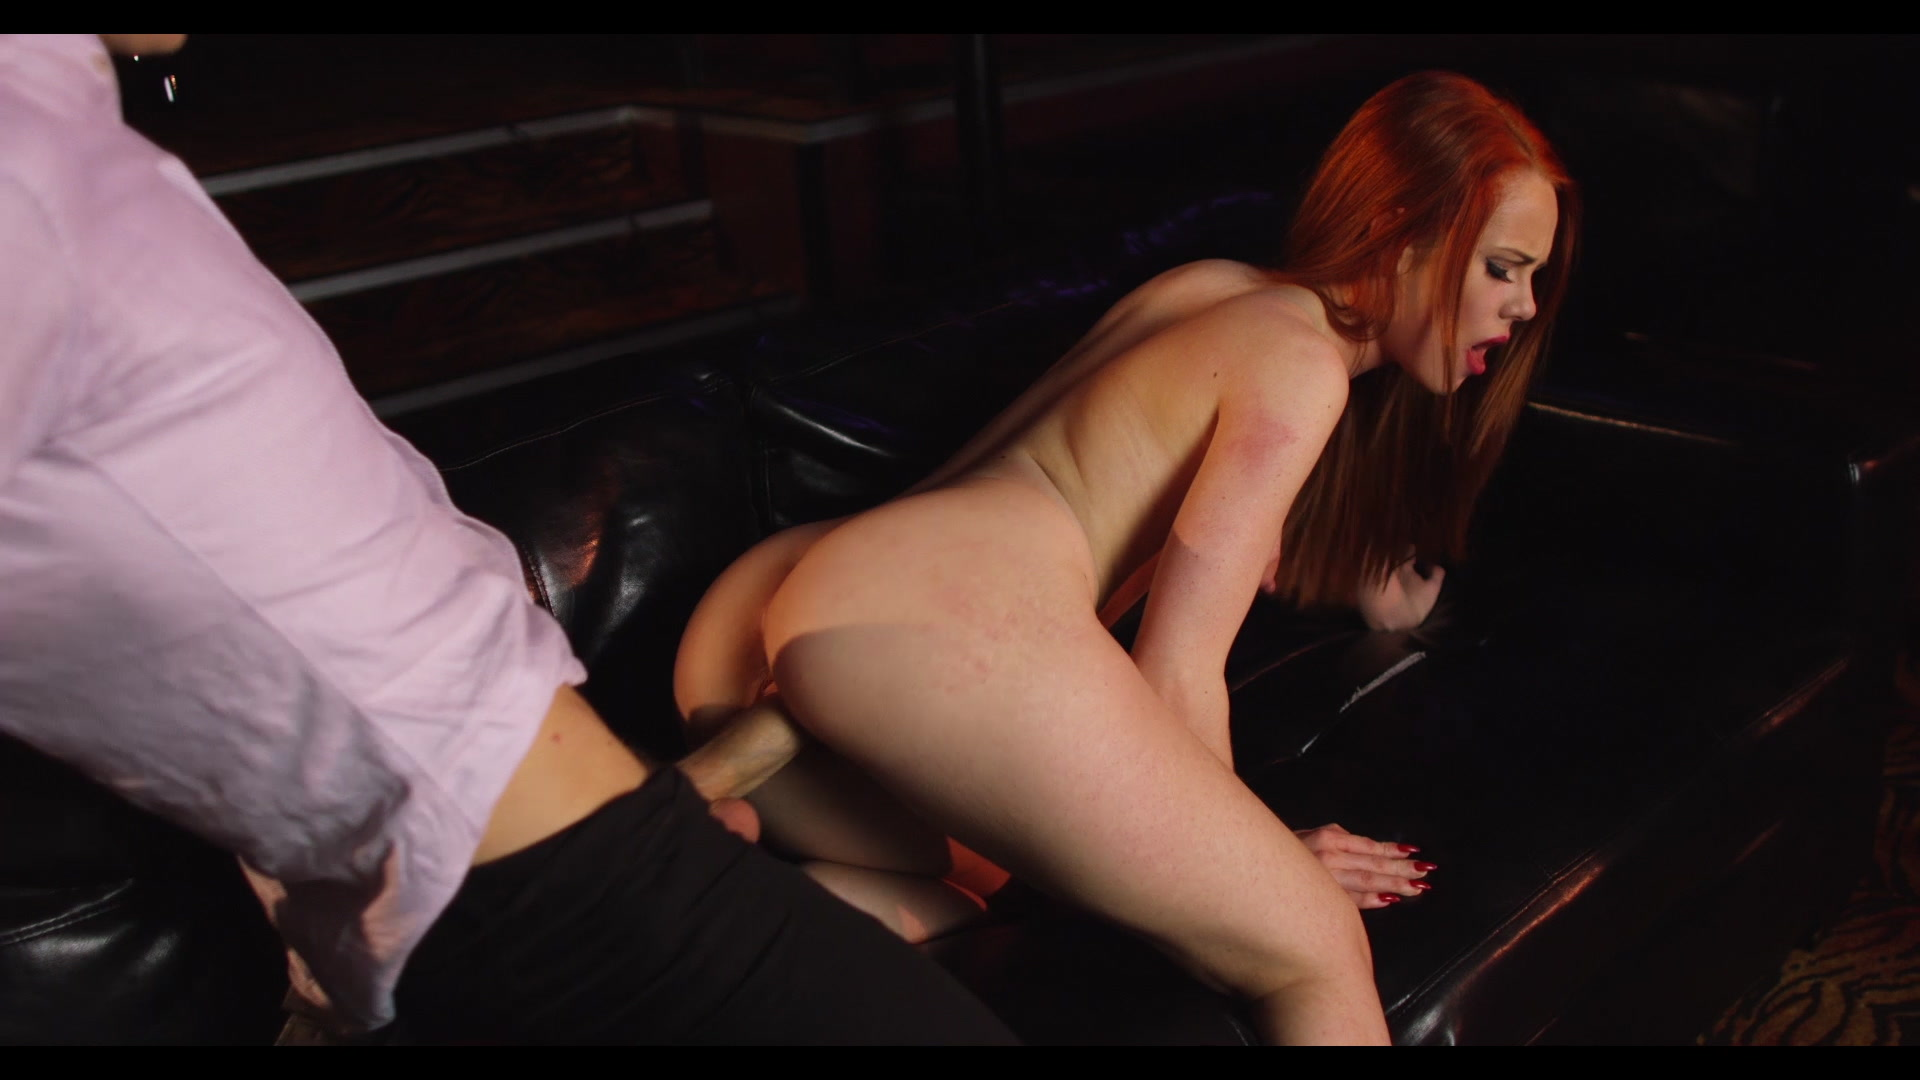 Scene with Ella Hughes - image 11 out of 20